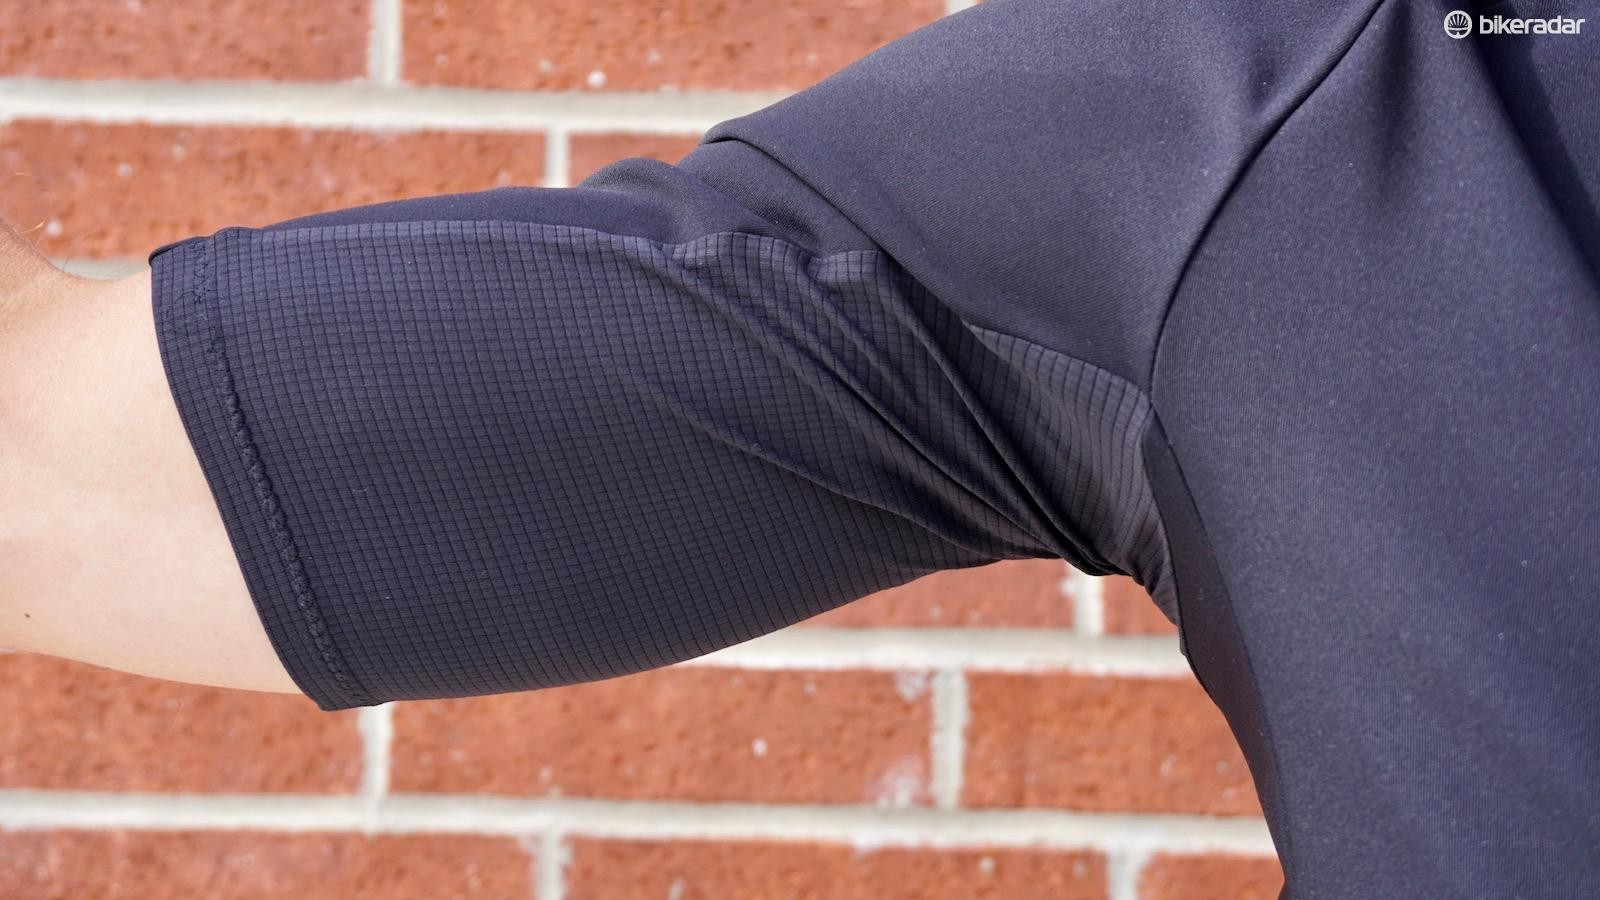 The underarm mesh material helps with fit and aids breathability